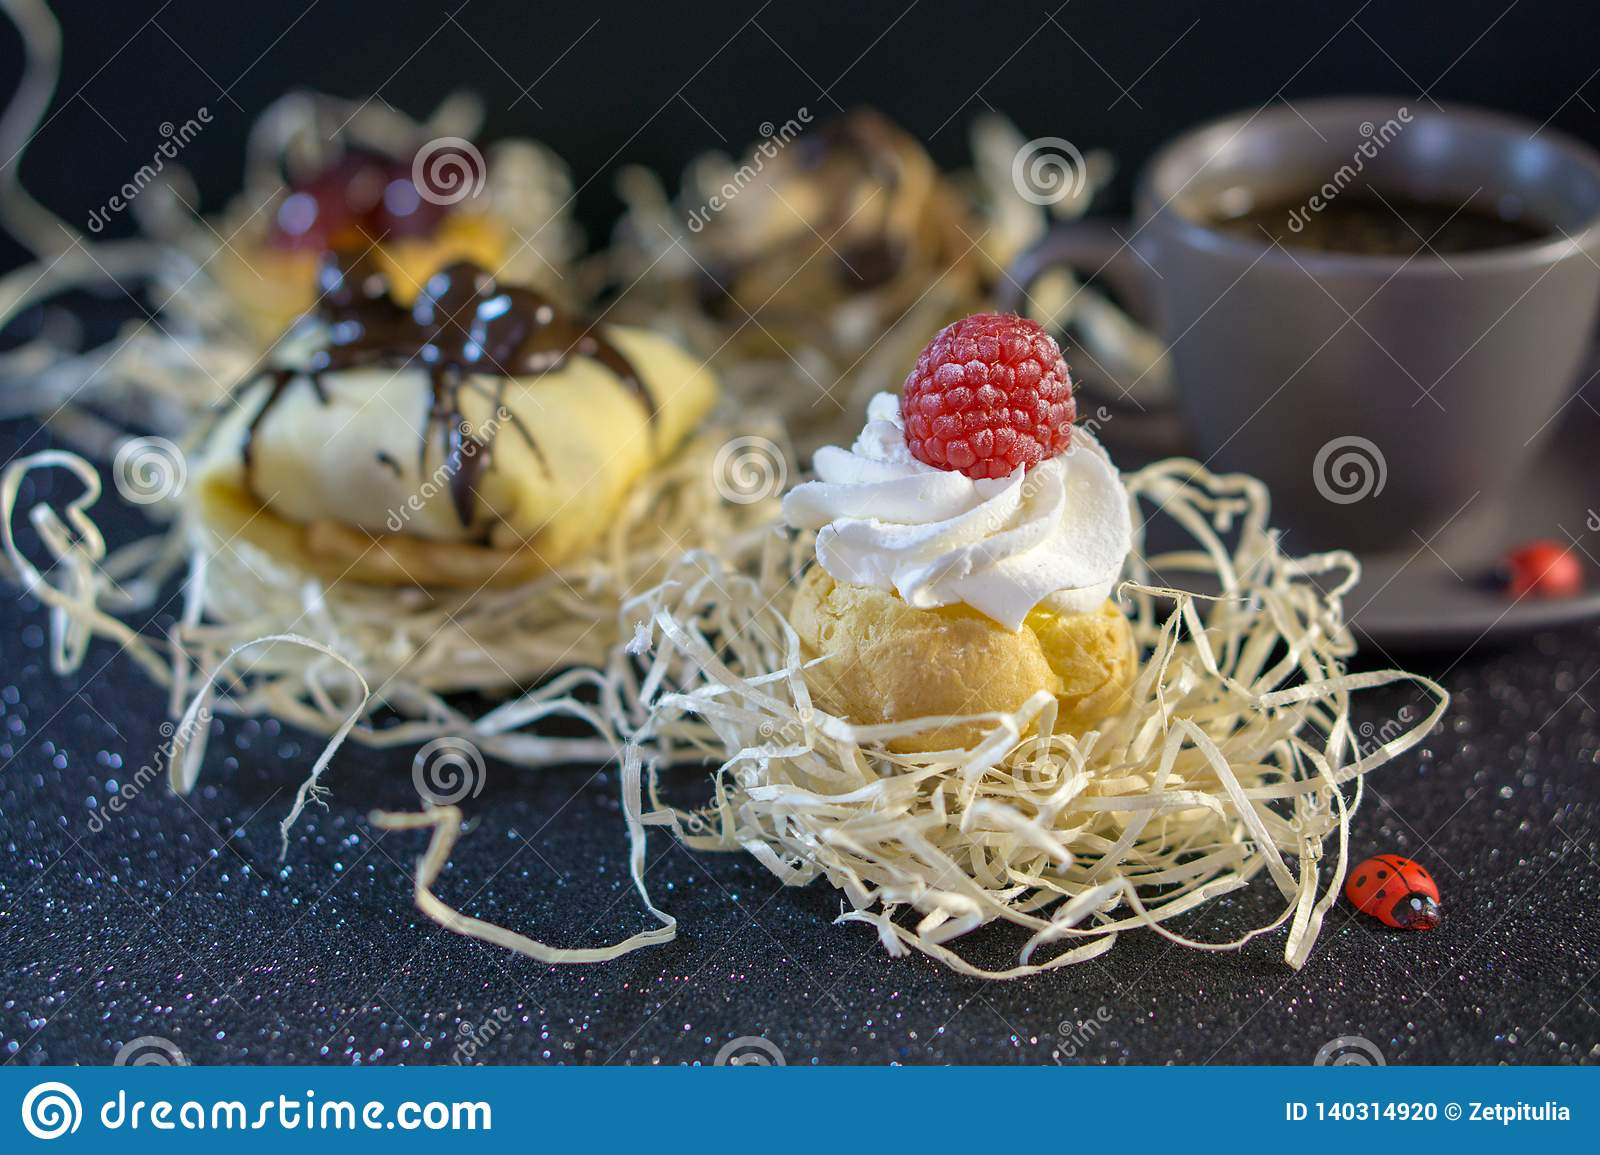 Divine pastries with raspberries and cream, with a bottom under the cake, blur the background with other pastries and a